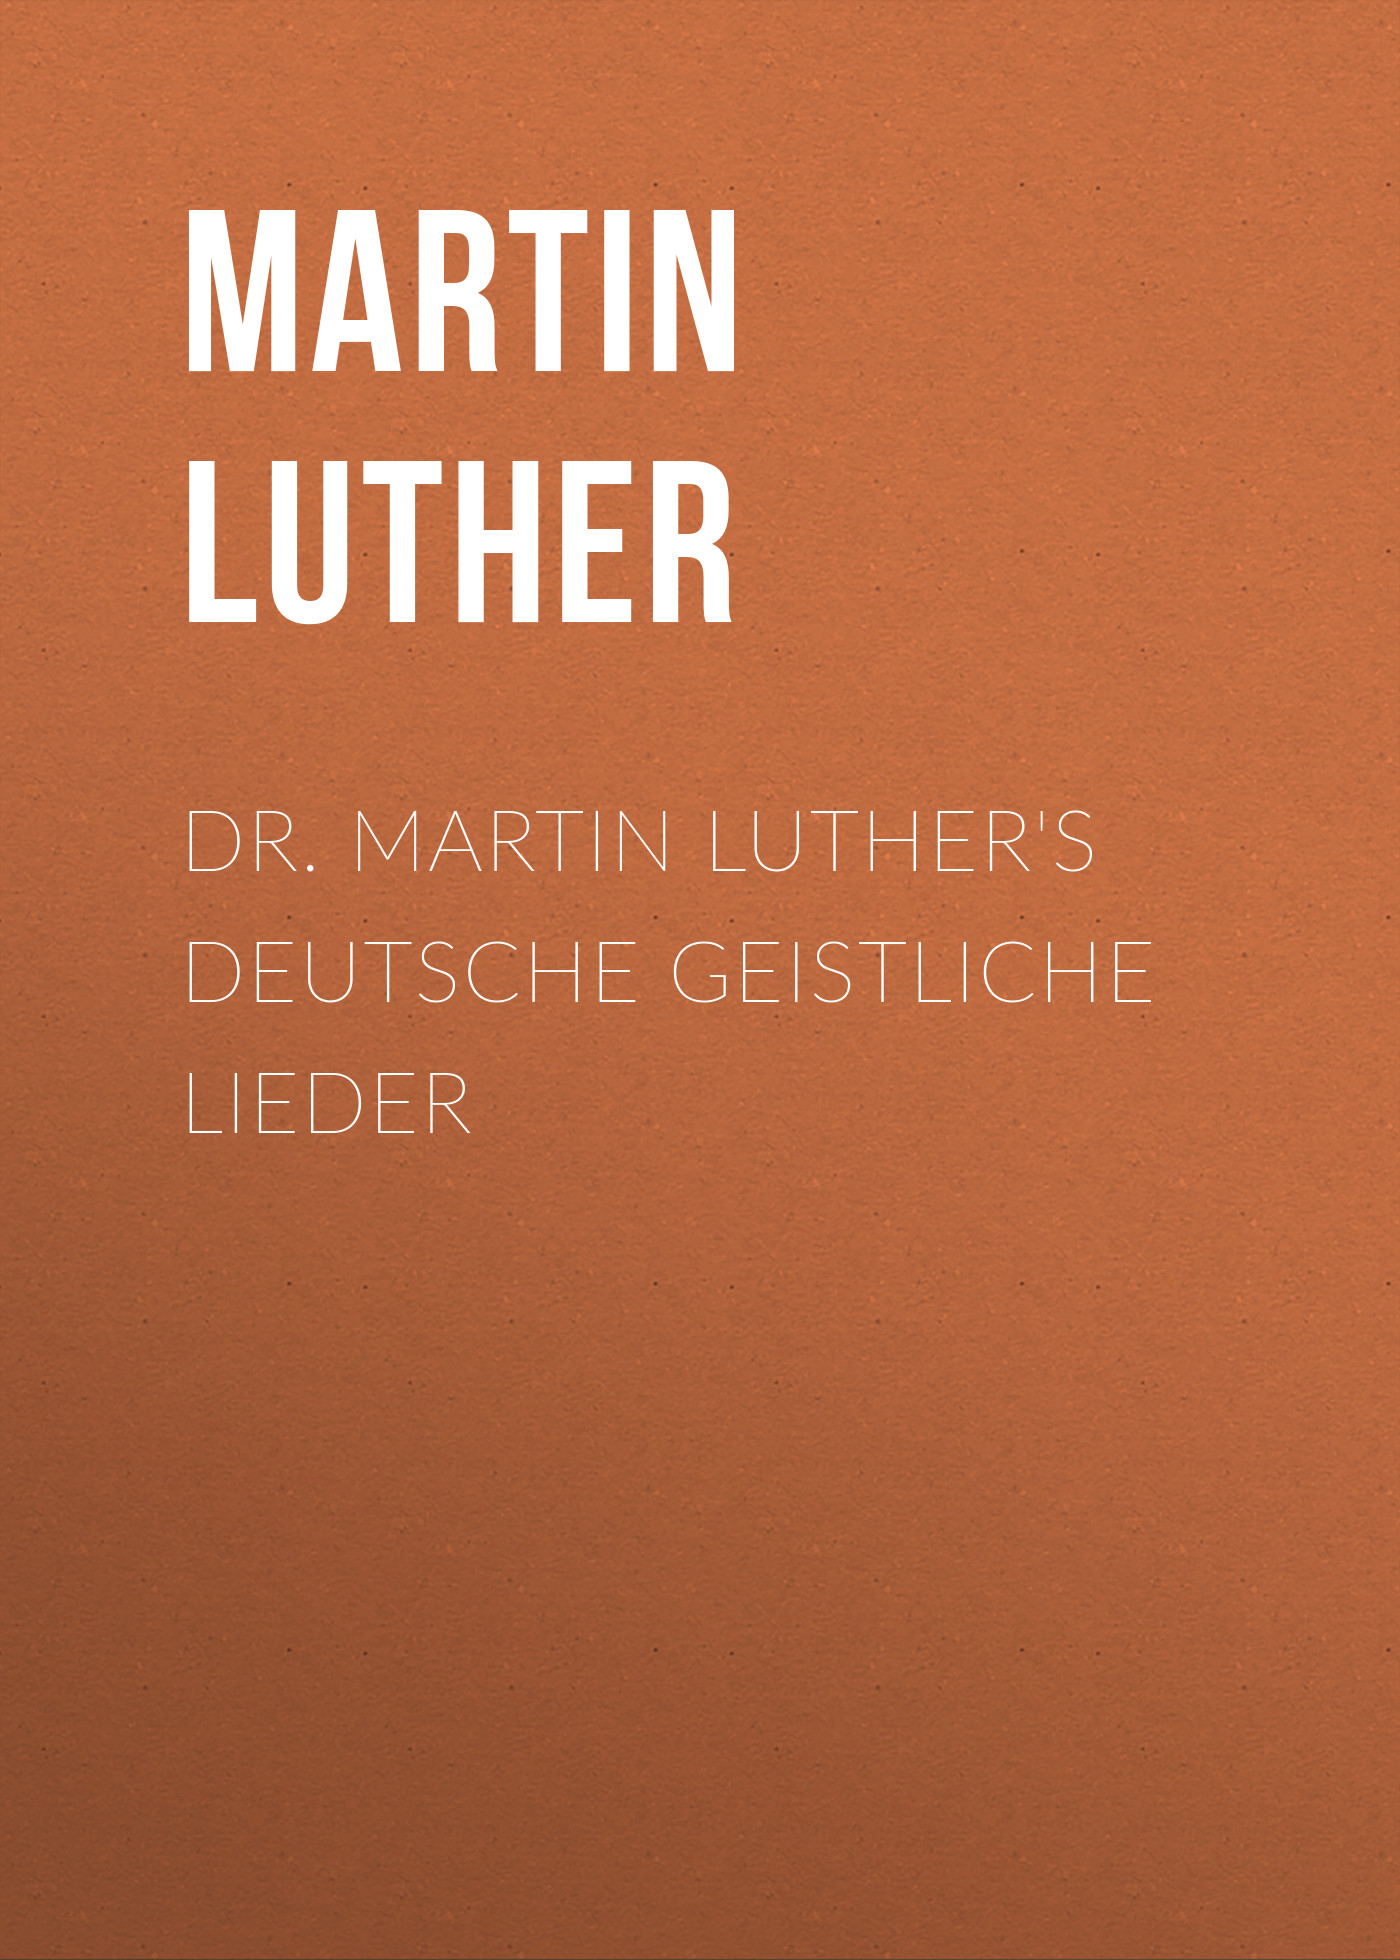 Martin Luther Dr. Martin Luther's Deutsche Geistliche Lieder martin luther concerning christian liberty with letter of martin luther to pope leo x